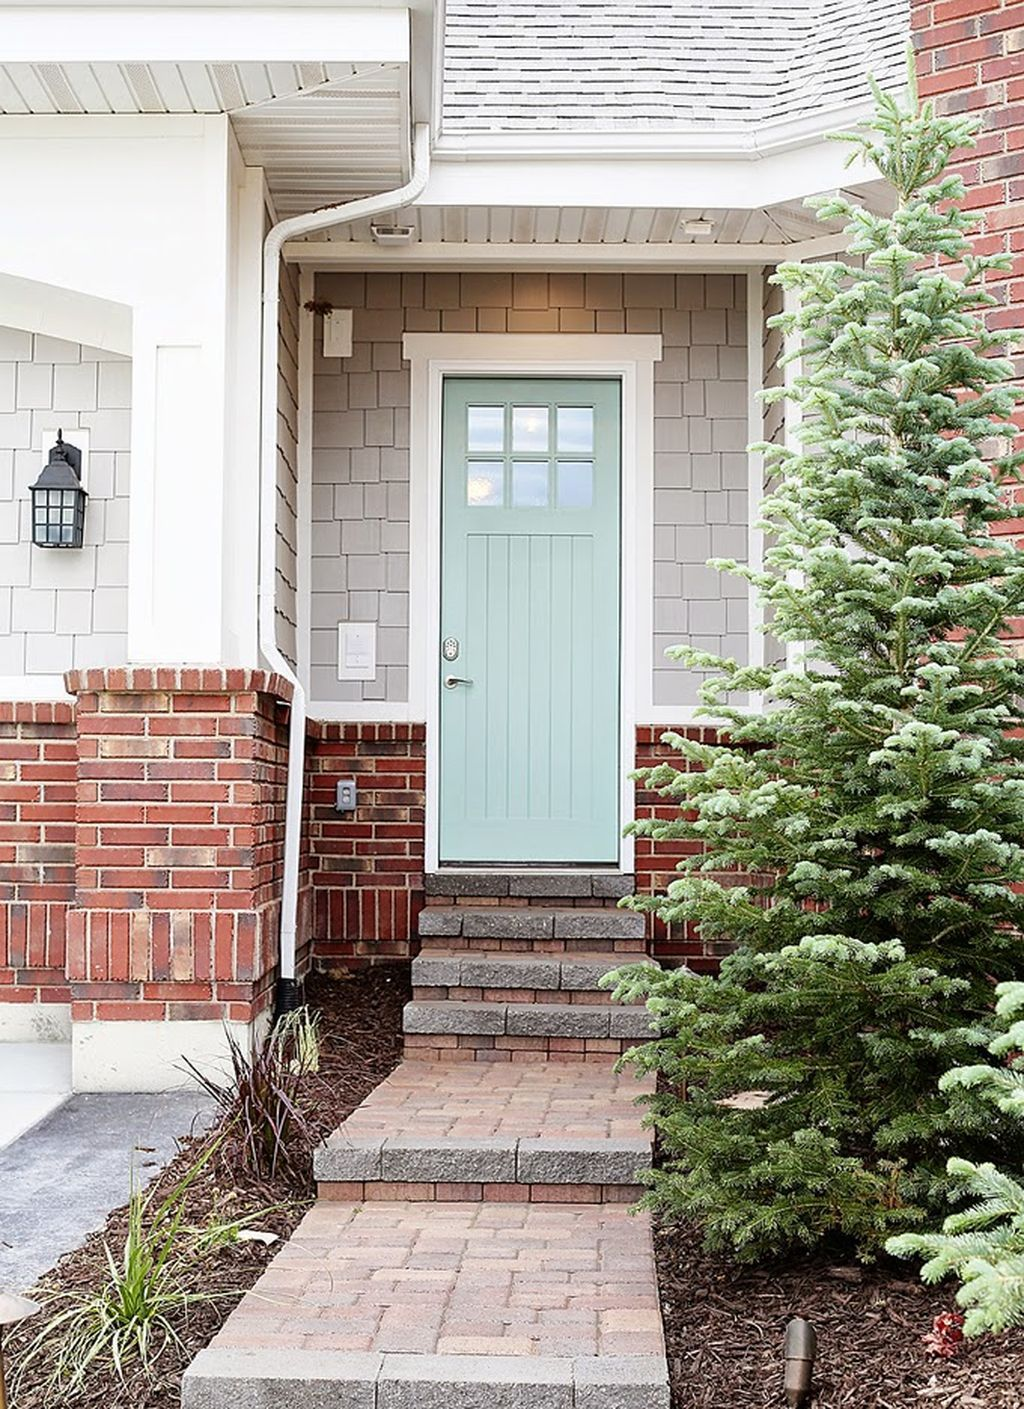 54 Exterior Paint Color Ideas With Red Brick | House paint ...